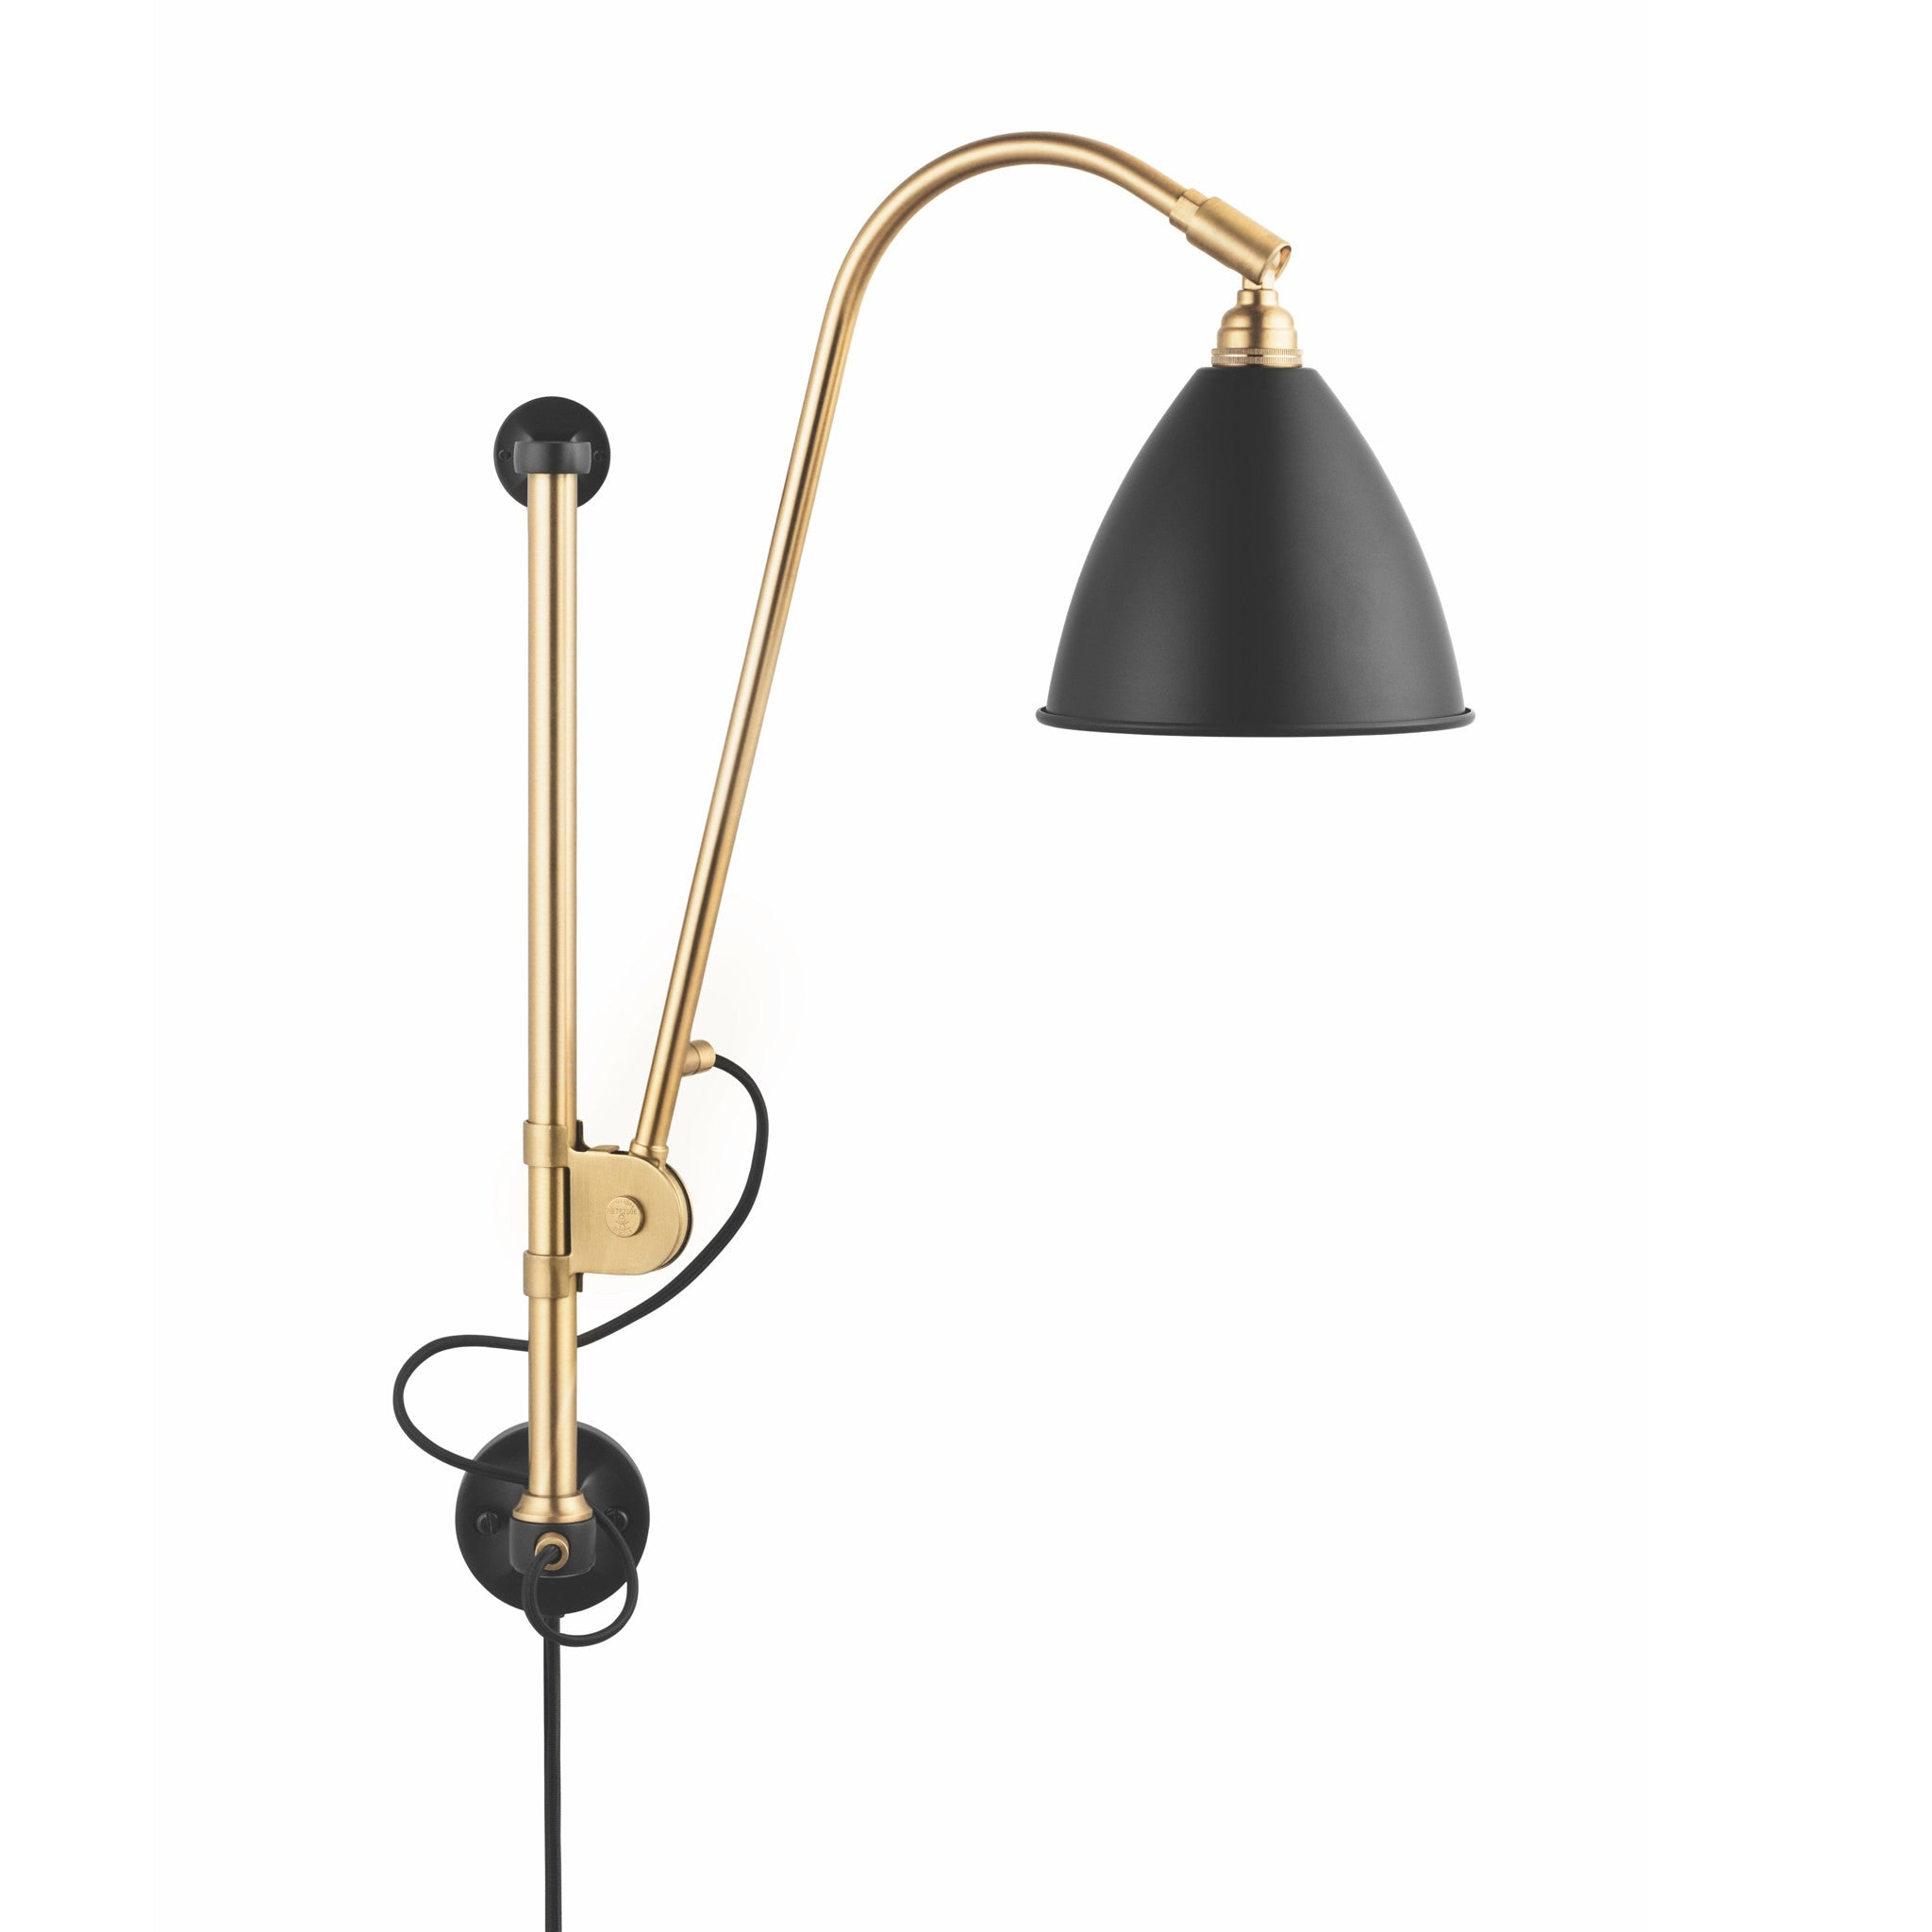 Bestlite BL5 Brass with Cable and Switch by Gubi